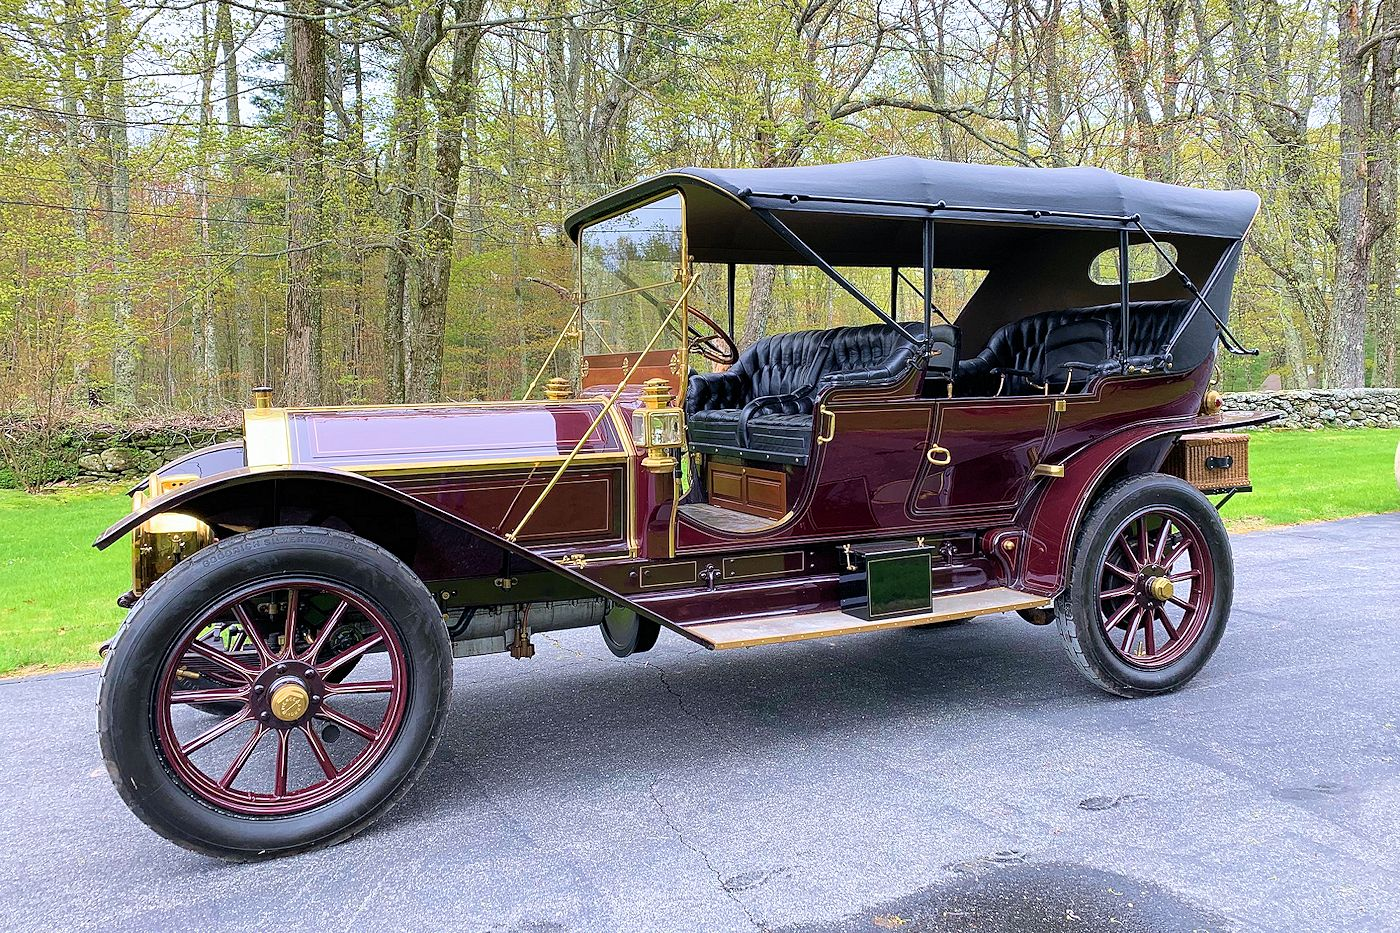 1910 Pierce Arrow, Model 66, Serial #6300E